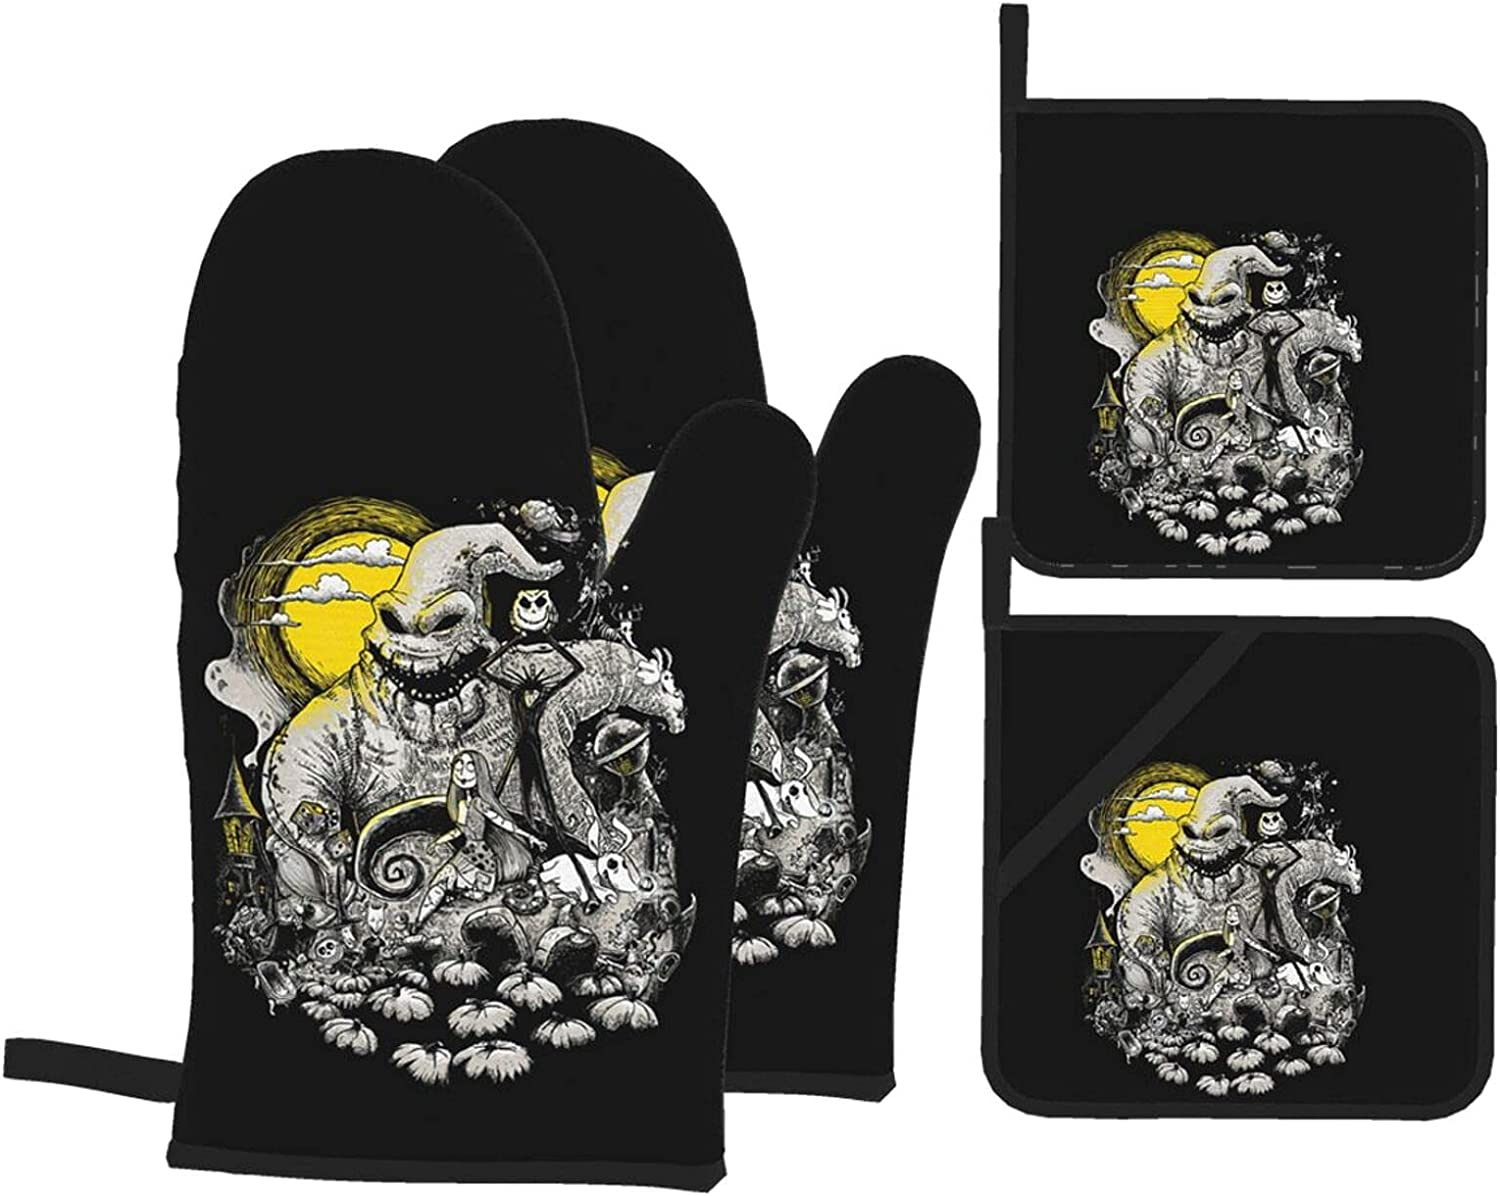 Oo-Gie Boo-Gie Max 49% OFF Oven Today's only Mitts Anti-Scalding Pads Pot Mitt Insulation